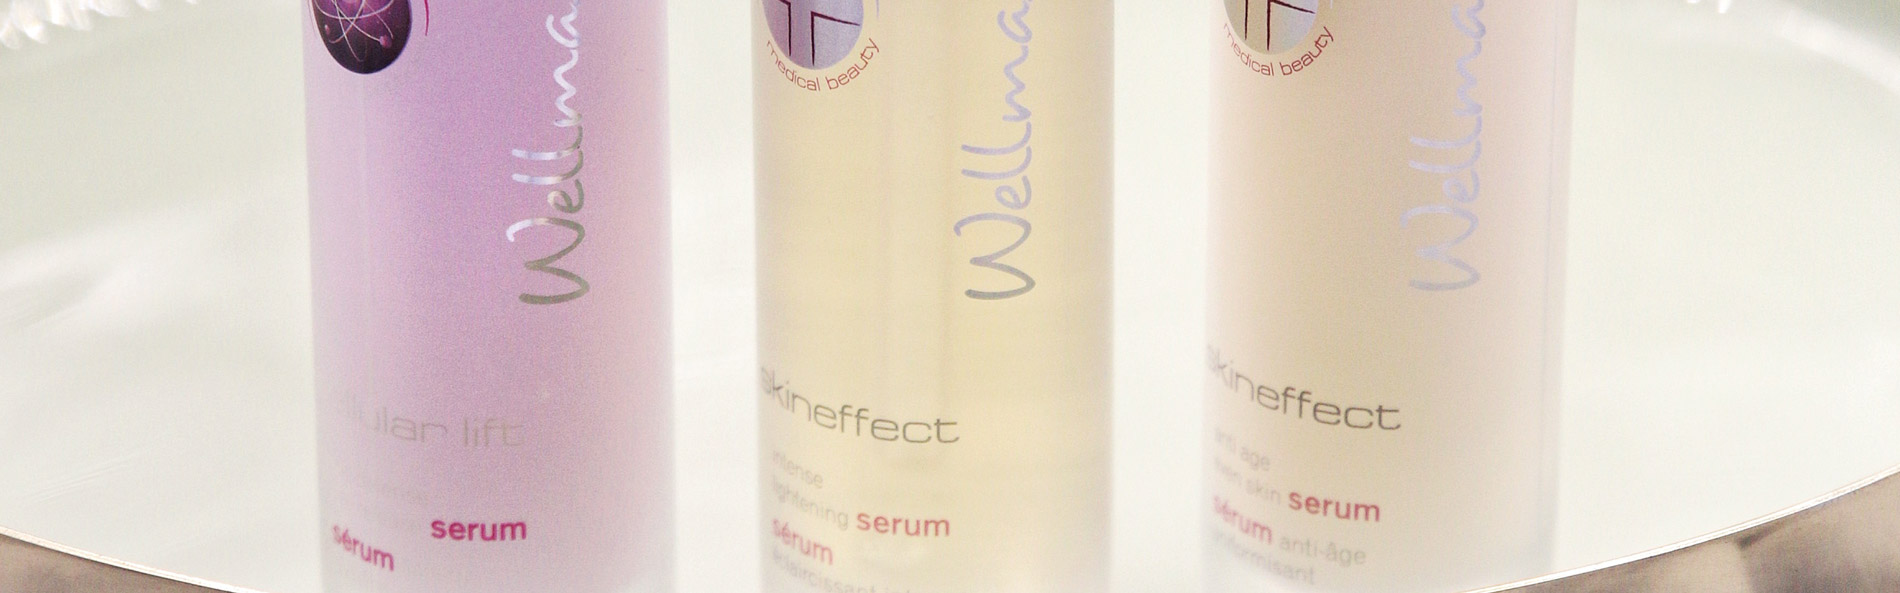 WELLMAXX Serum